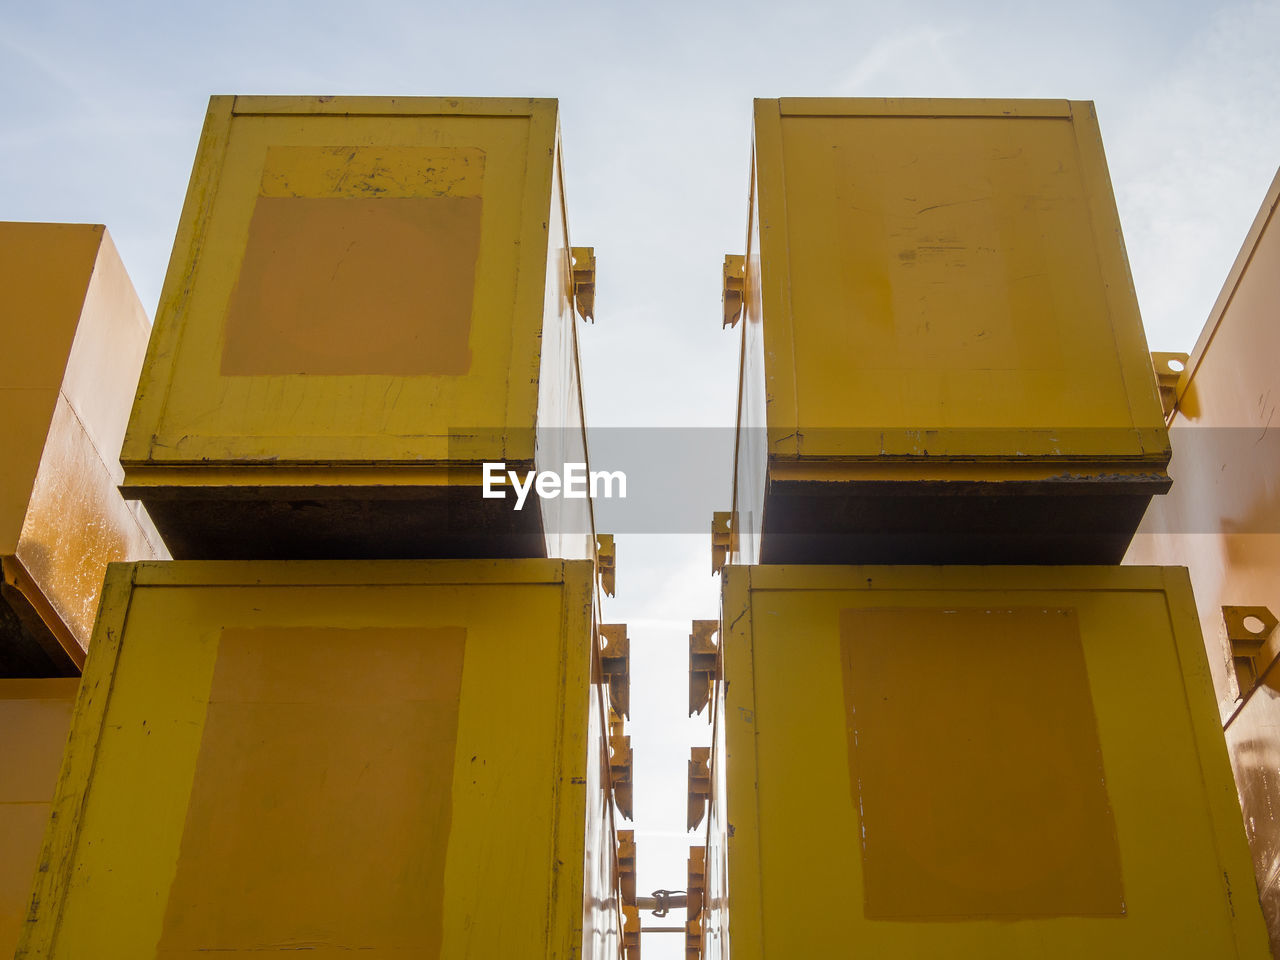 Low angle view of yellow construction containers